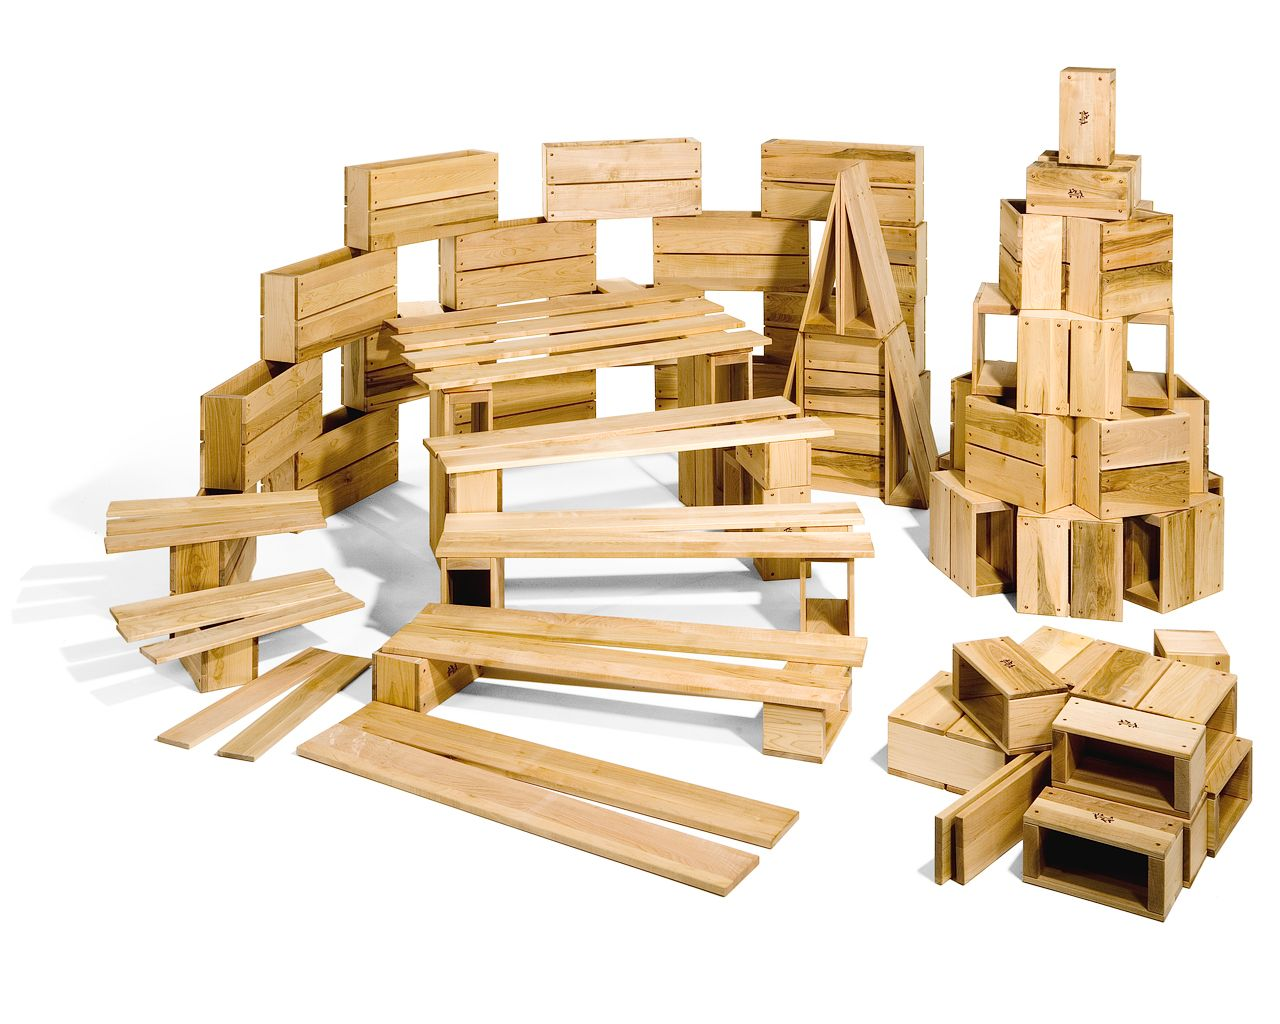 Child craft wooden blocks - Large Muscles And Imaginations Are Hard At Work When Children Build With Hollow Blocks